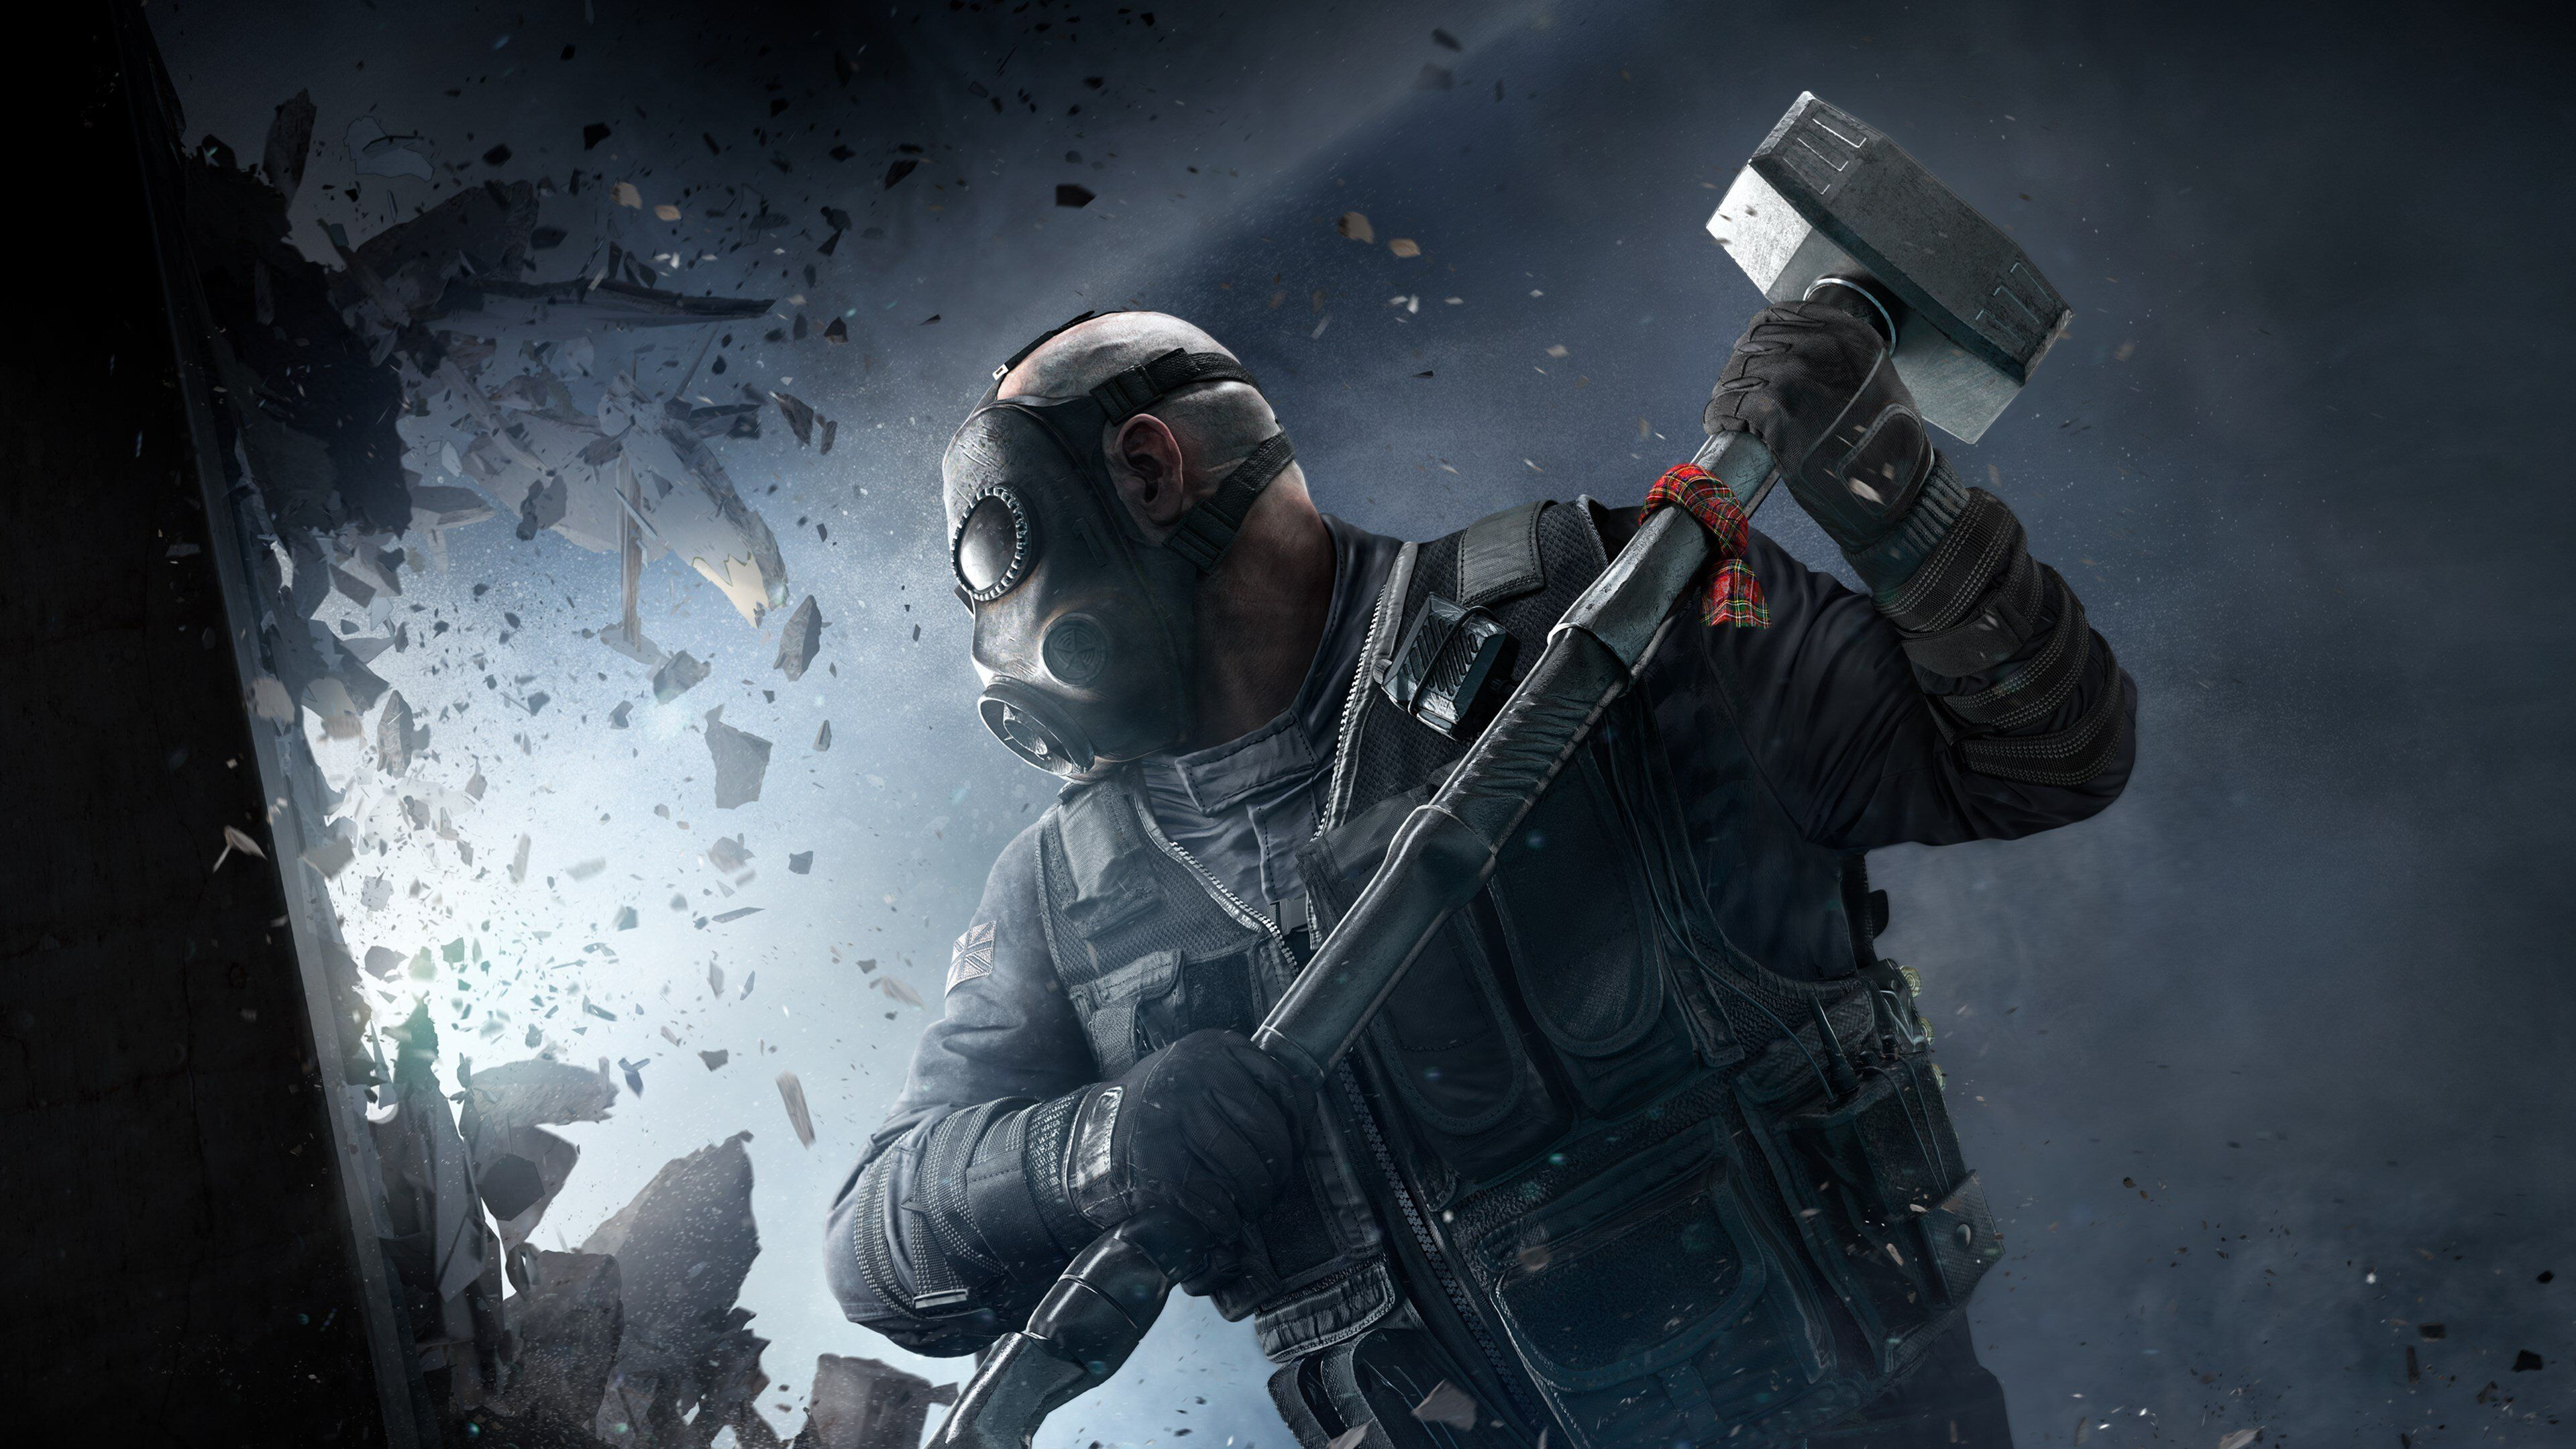 Tom Clancy S Rainbow Six Siege Wallpapers Top Free Tom Clancy S